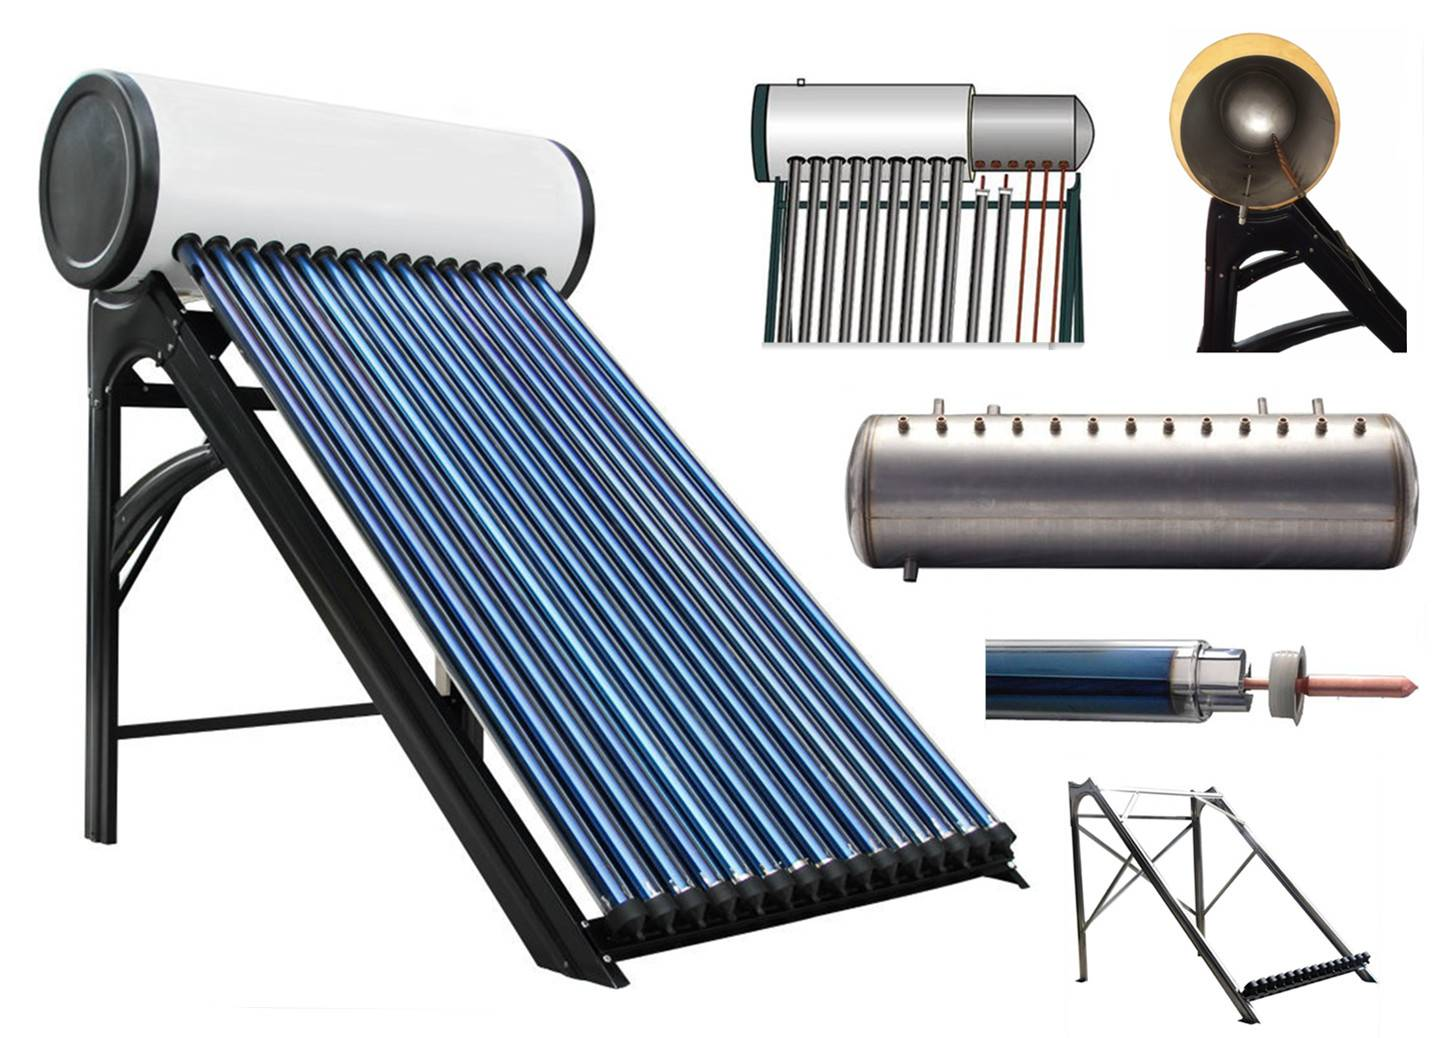 High Pressure Solar Hot Water Heater, heat pipe solar collector